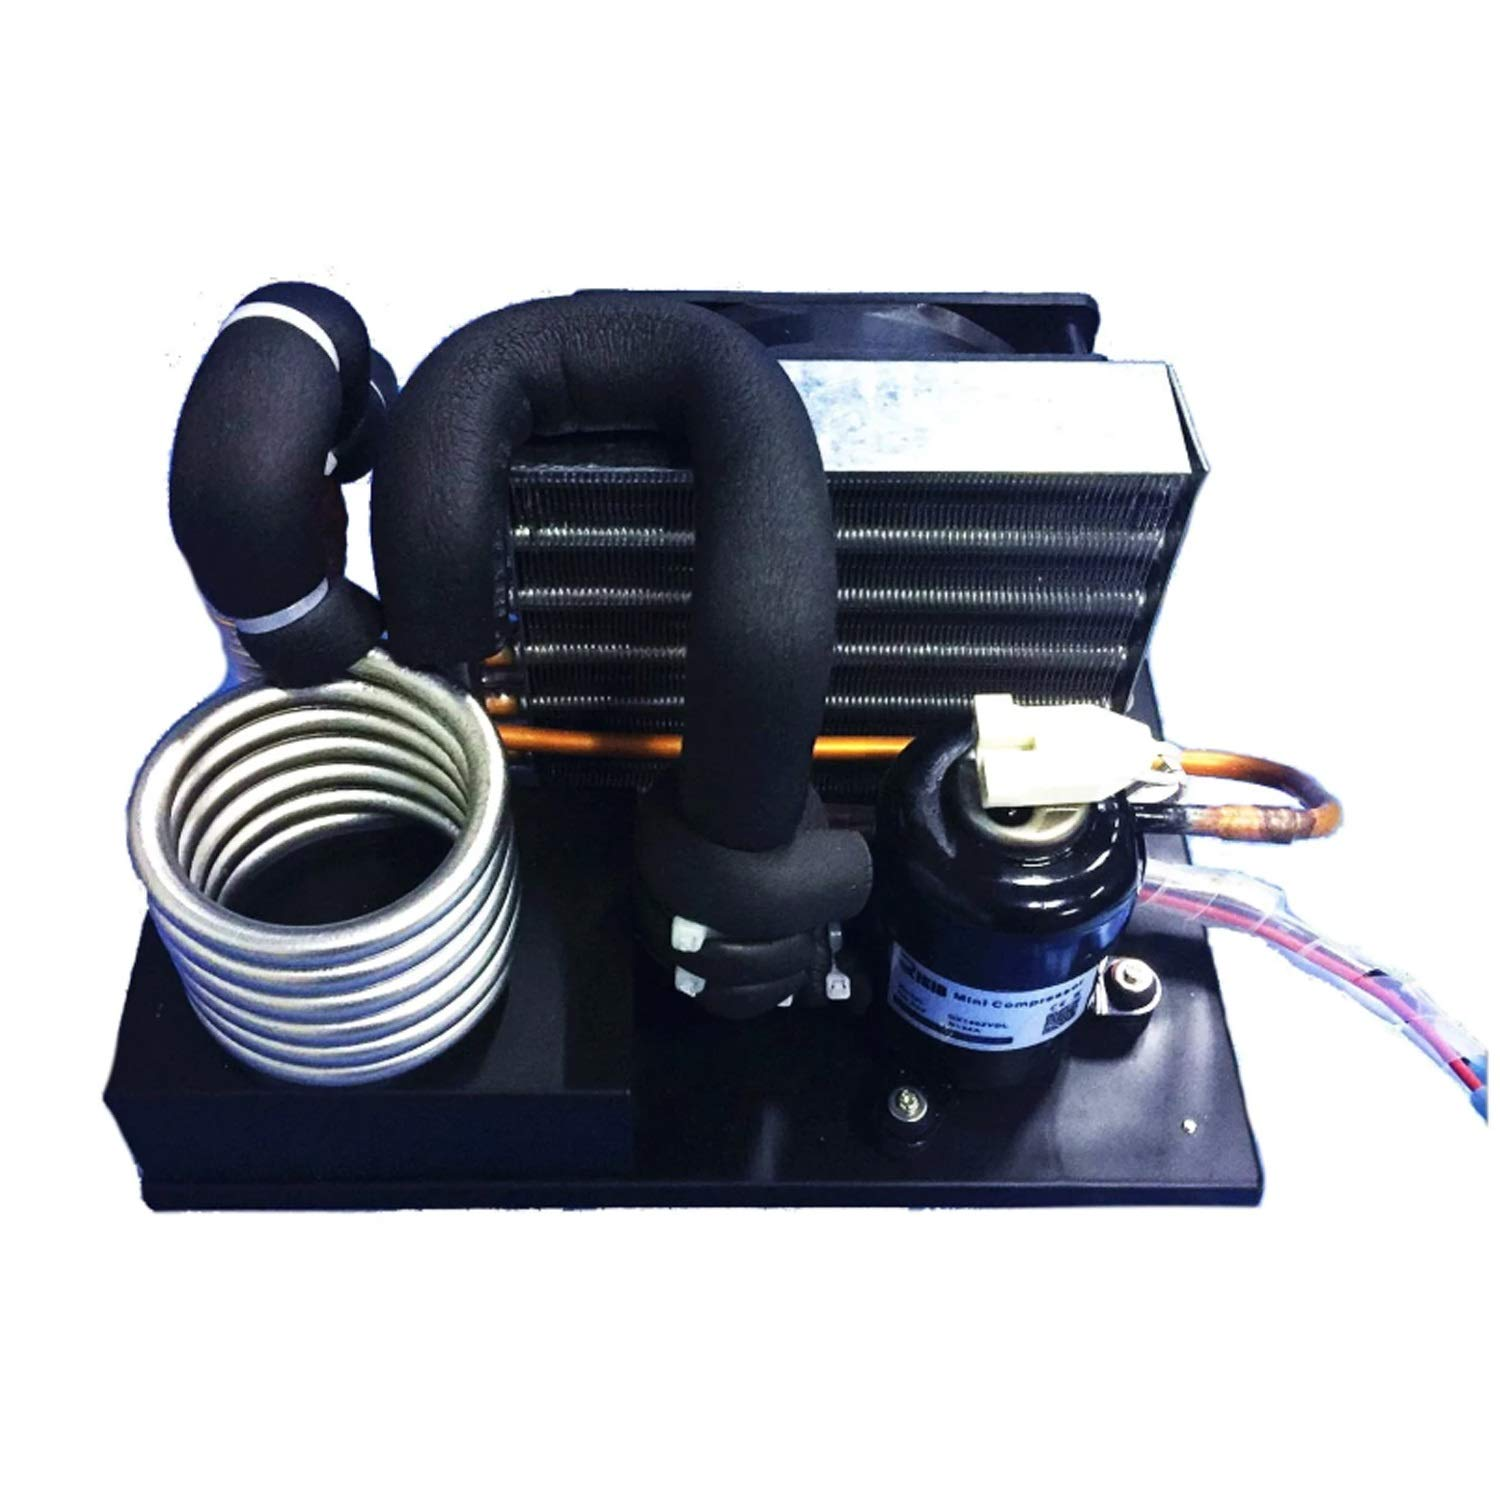 Portable cooling system Liquid Cooling System DC24V 125~400W Cooler Module ,Portable Stianless Steel Coil S-Type Liquid Chiller R134A Refrigerant Miniature Water Cycle Refrigeration small cooling unit by Shengjuanfeng